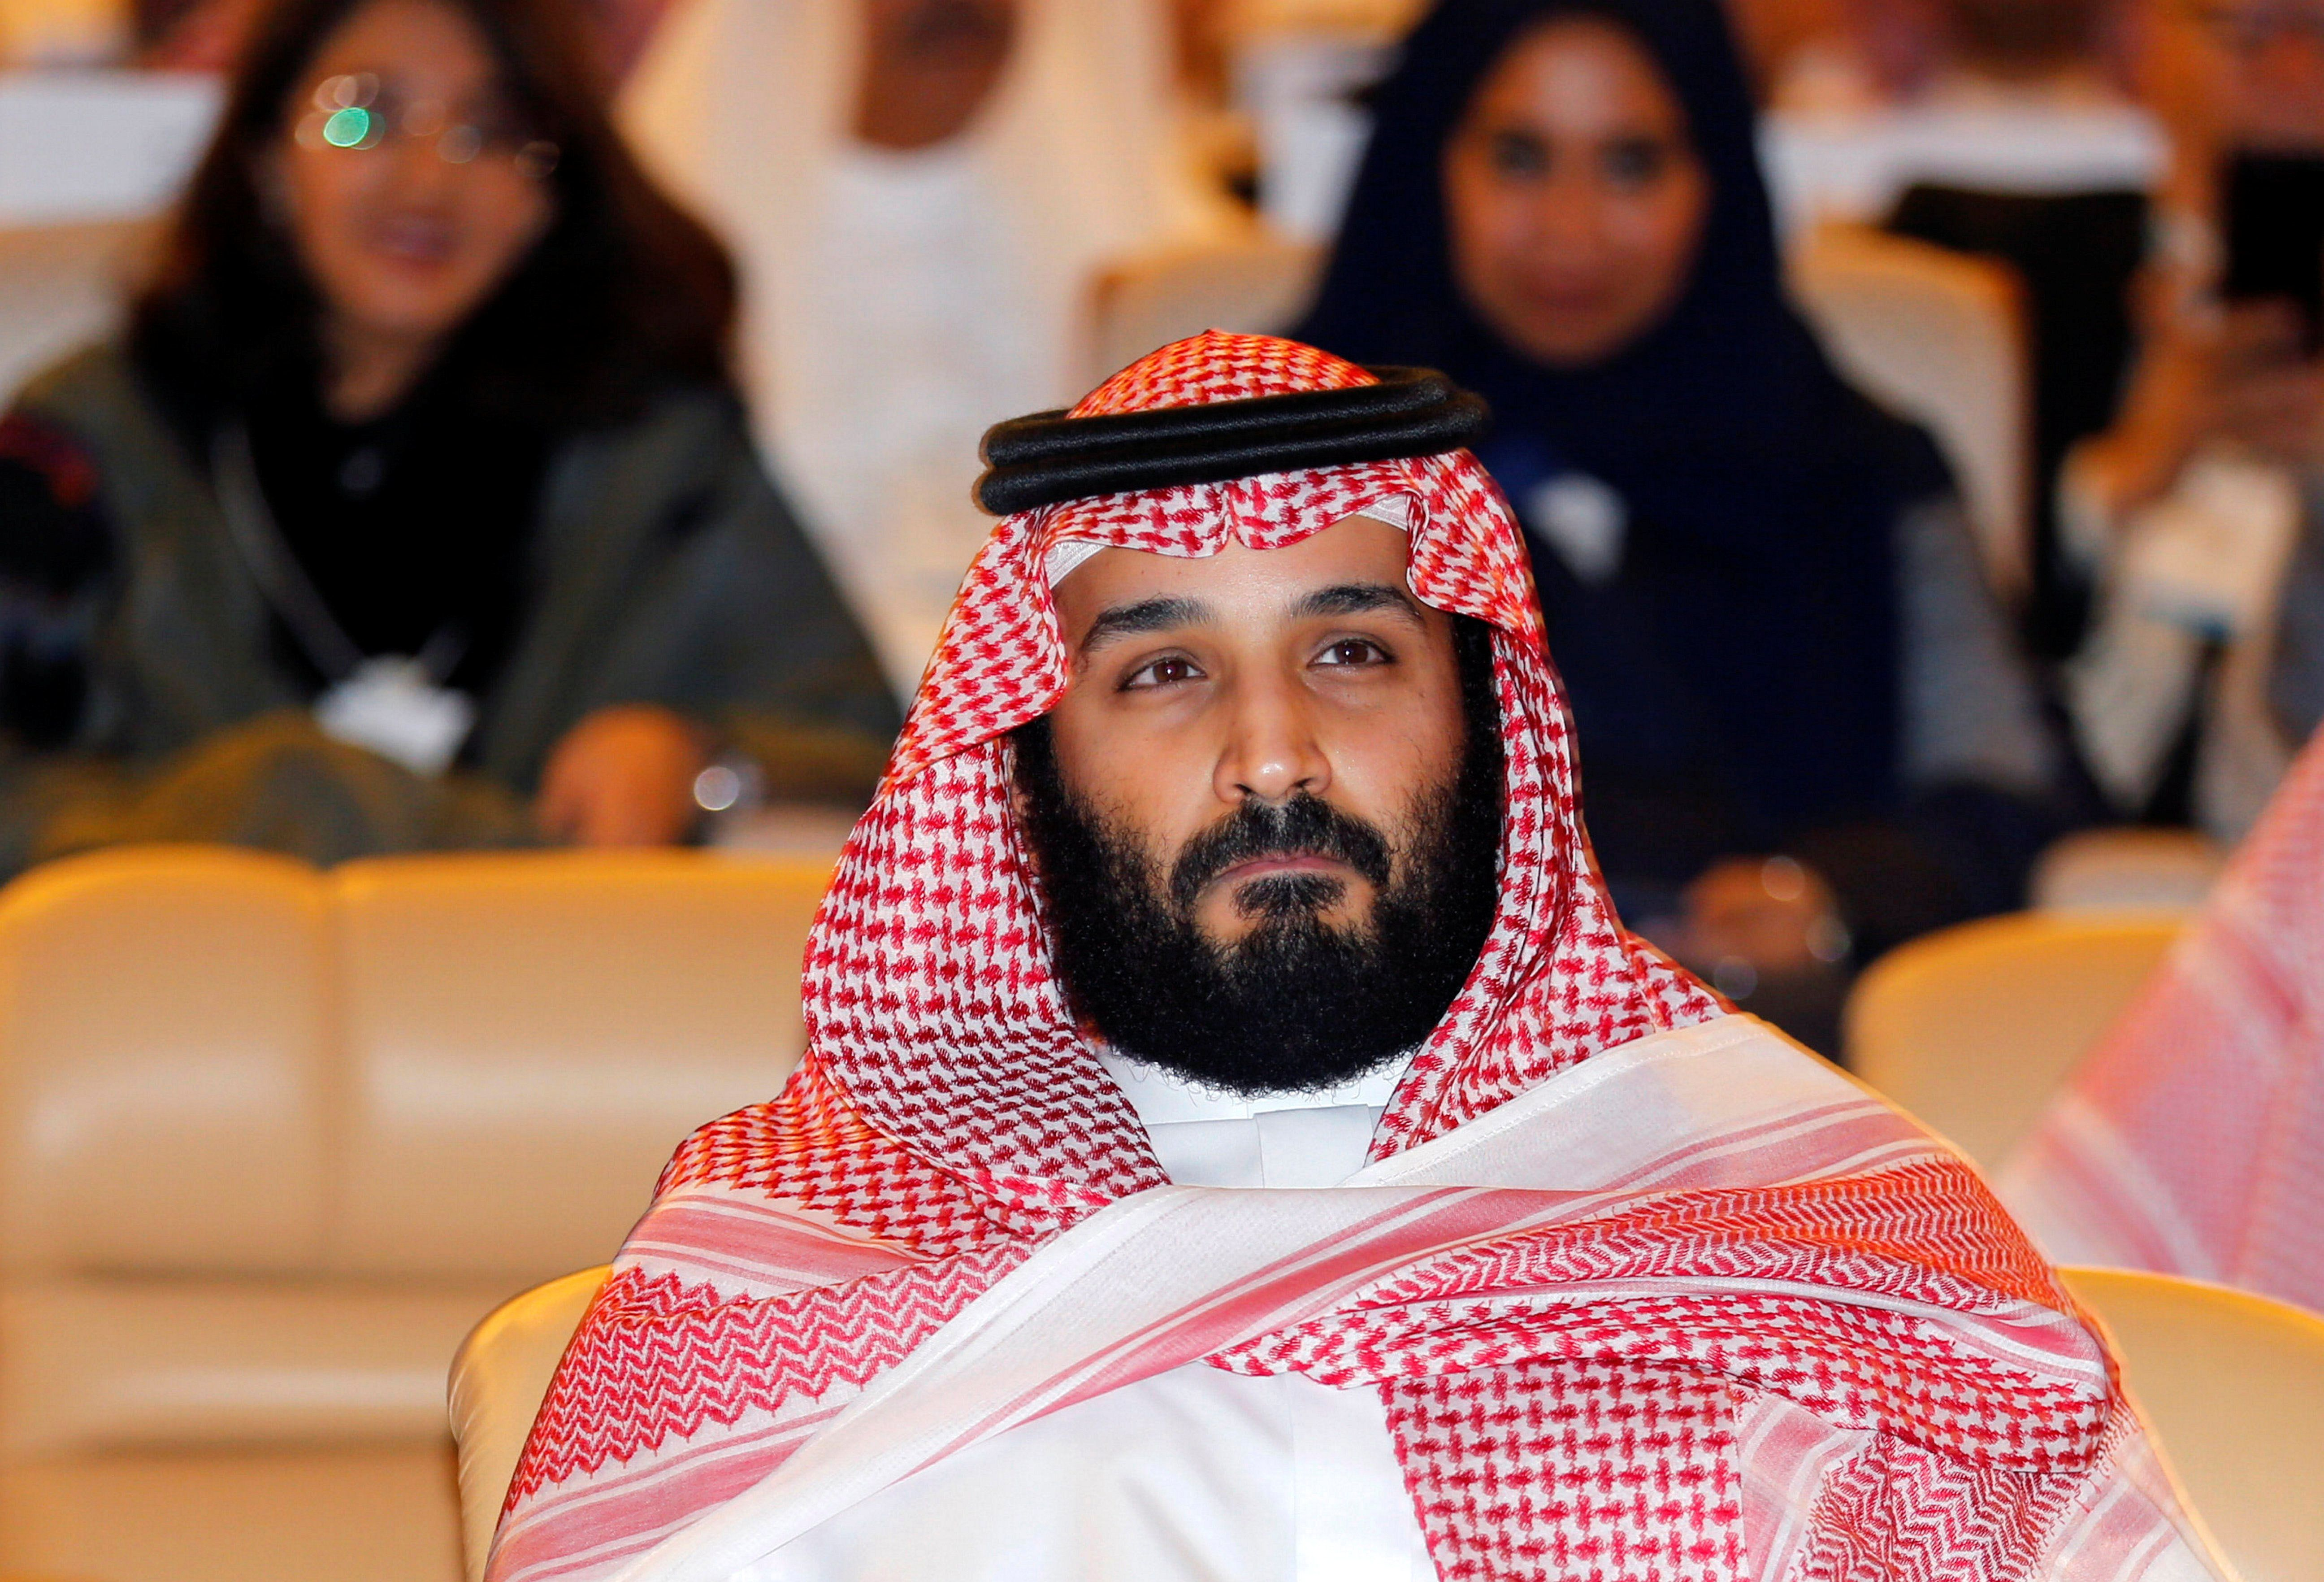 WHAT DID PEOPLE GET WRONG ABOUT MBS?